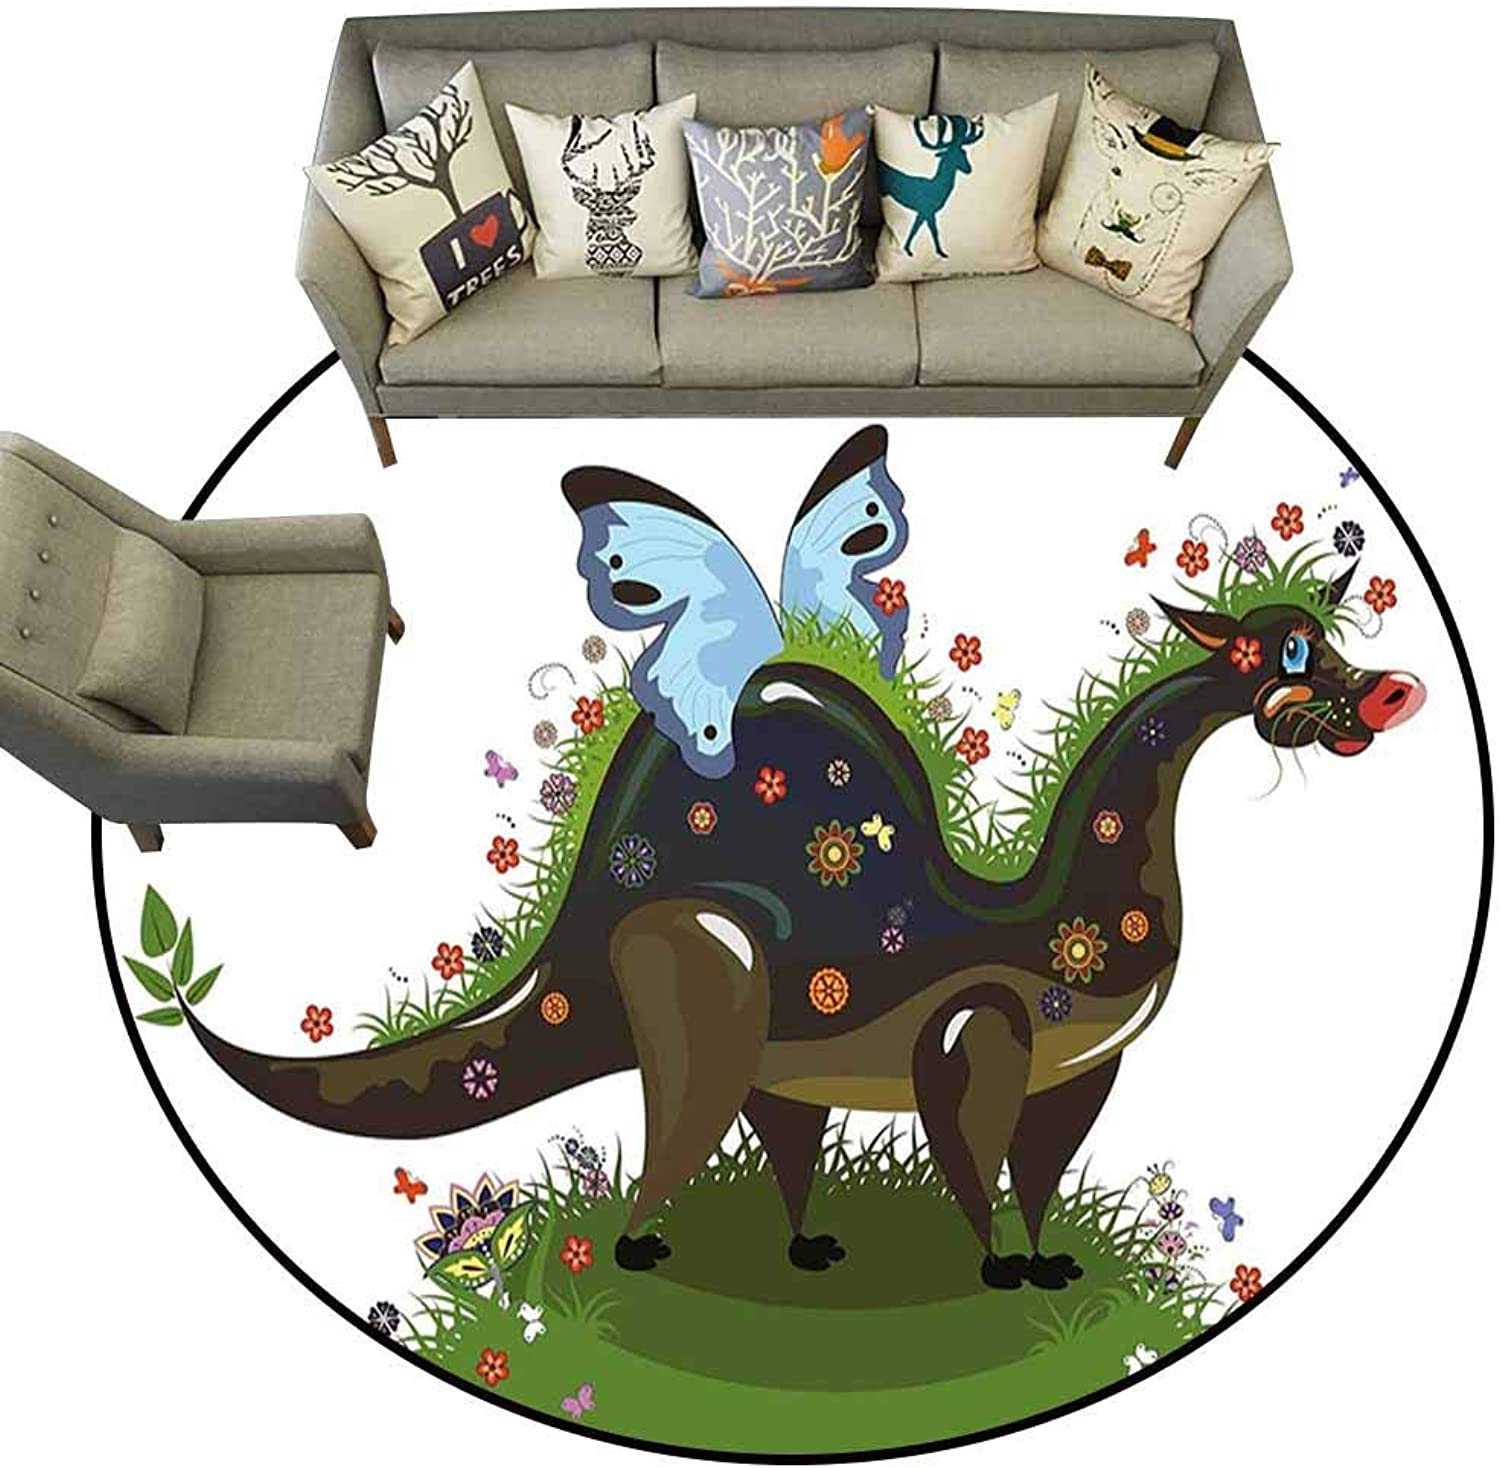 Anti Slip Round Doormat Indoor,Fantasy,Butterfly Riding A Funny Dragon with Flowers Kids Nursery Cartoon,Army and Olive Green bluee,Floor Rug shoes Scraper Door Mat Rug5 feet